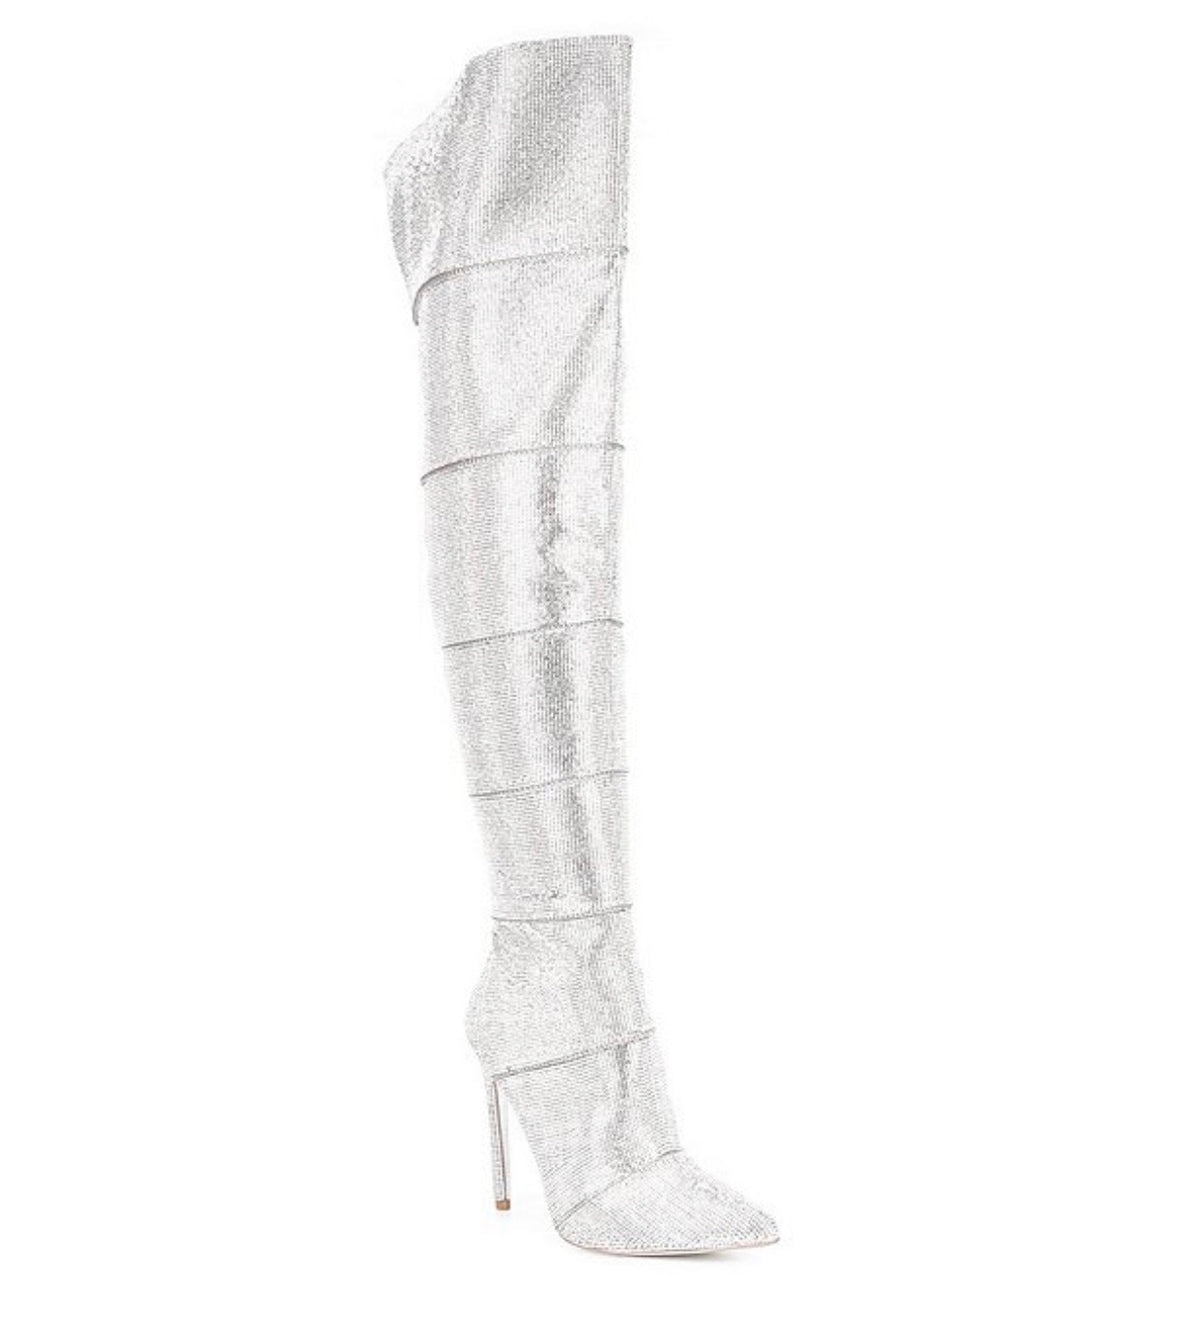 Steve Madden Wonders Rhinestone Knee High Boot